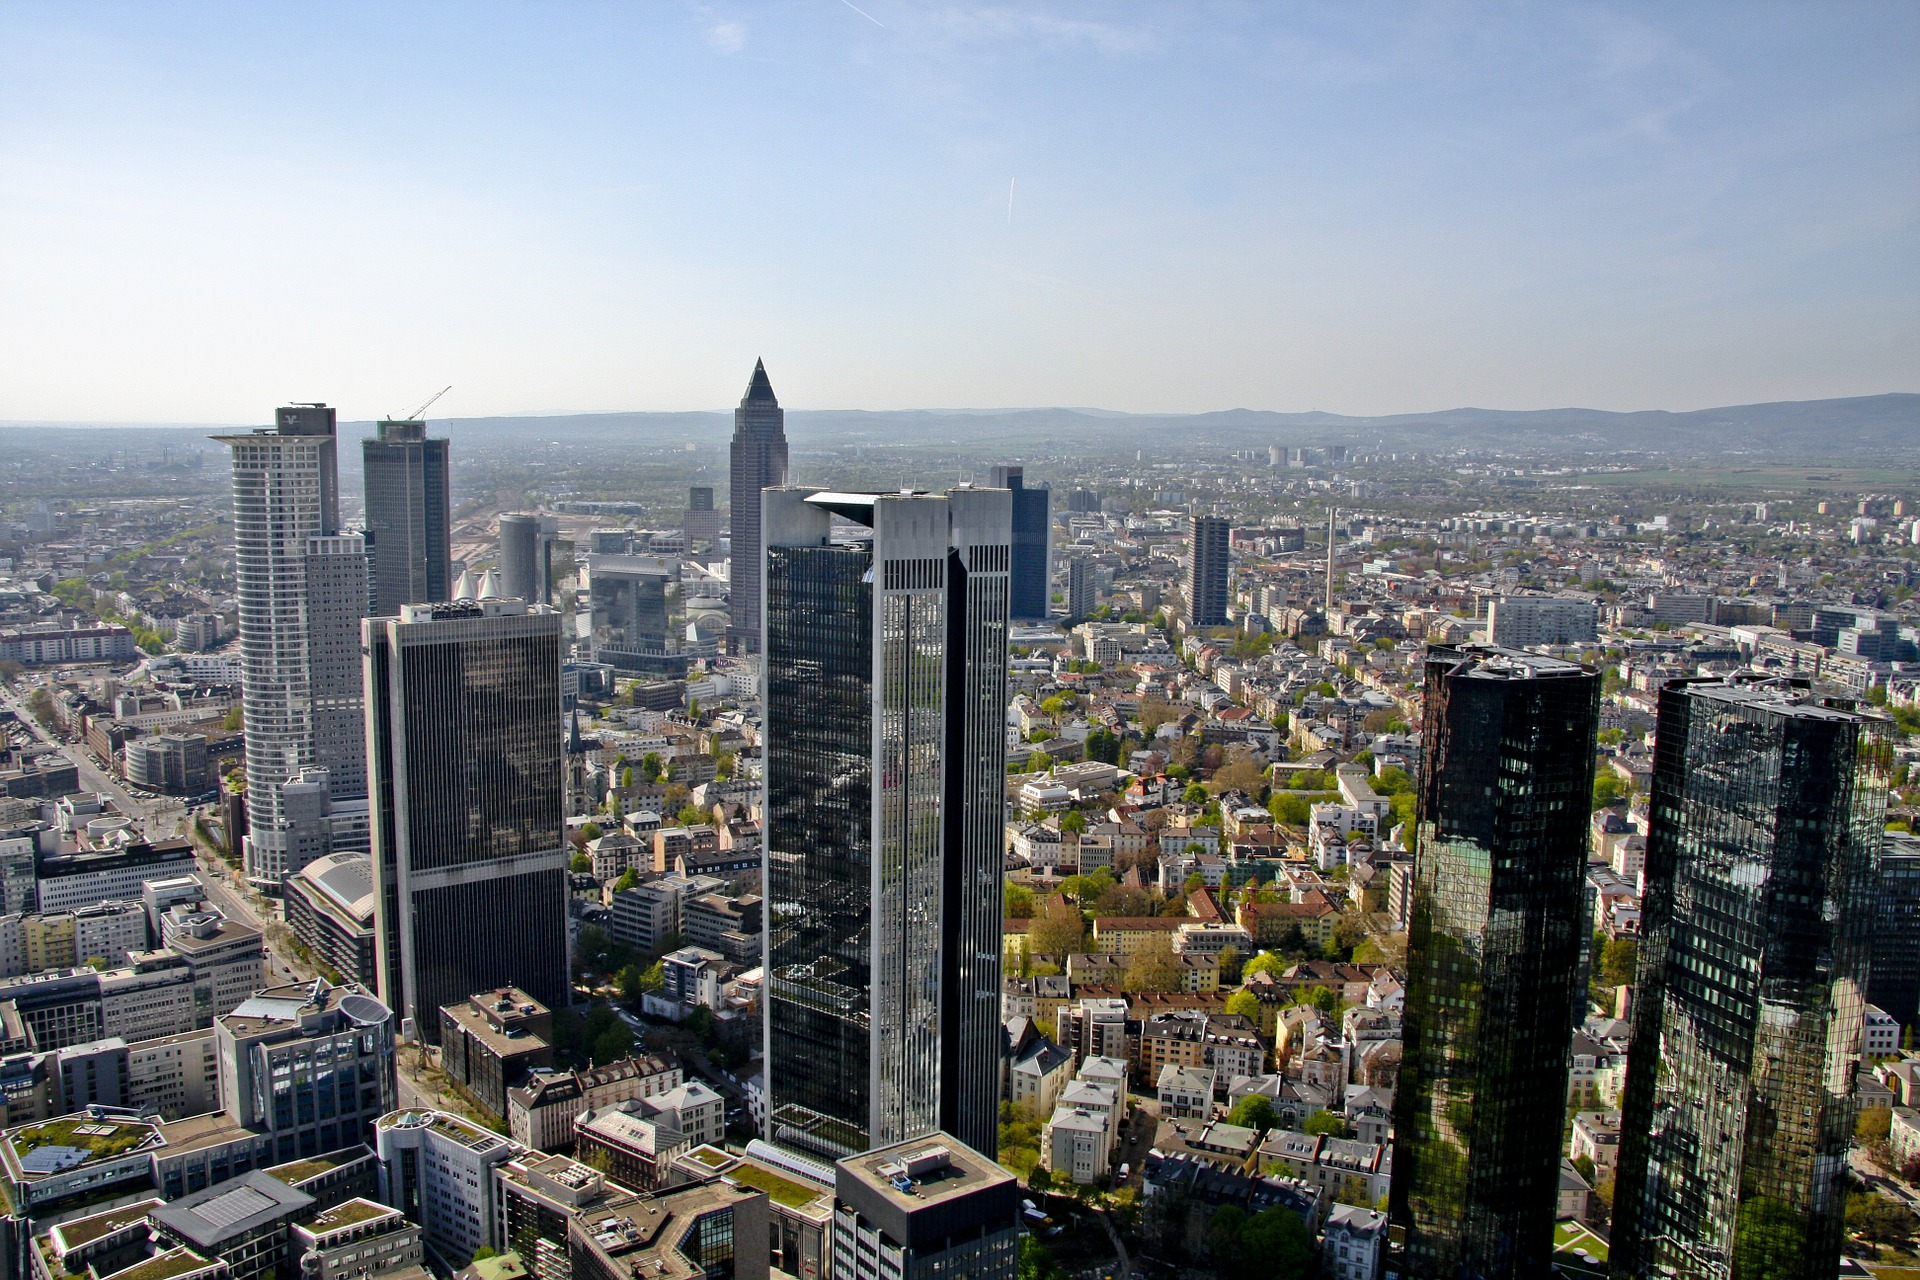 Data centre demand in Frankfurt is supported by its strong connectivity, favourable business climate, and position as a major financial hub (Picture: Pixabay)